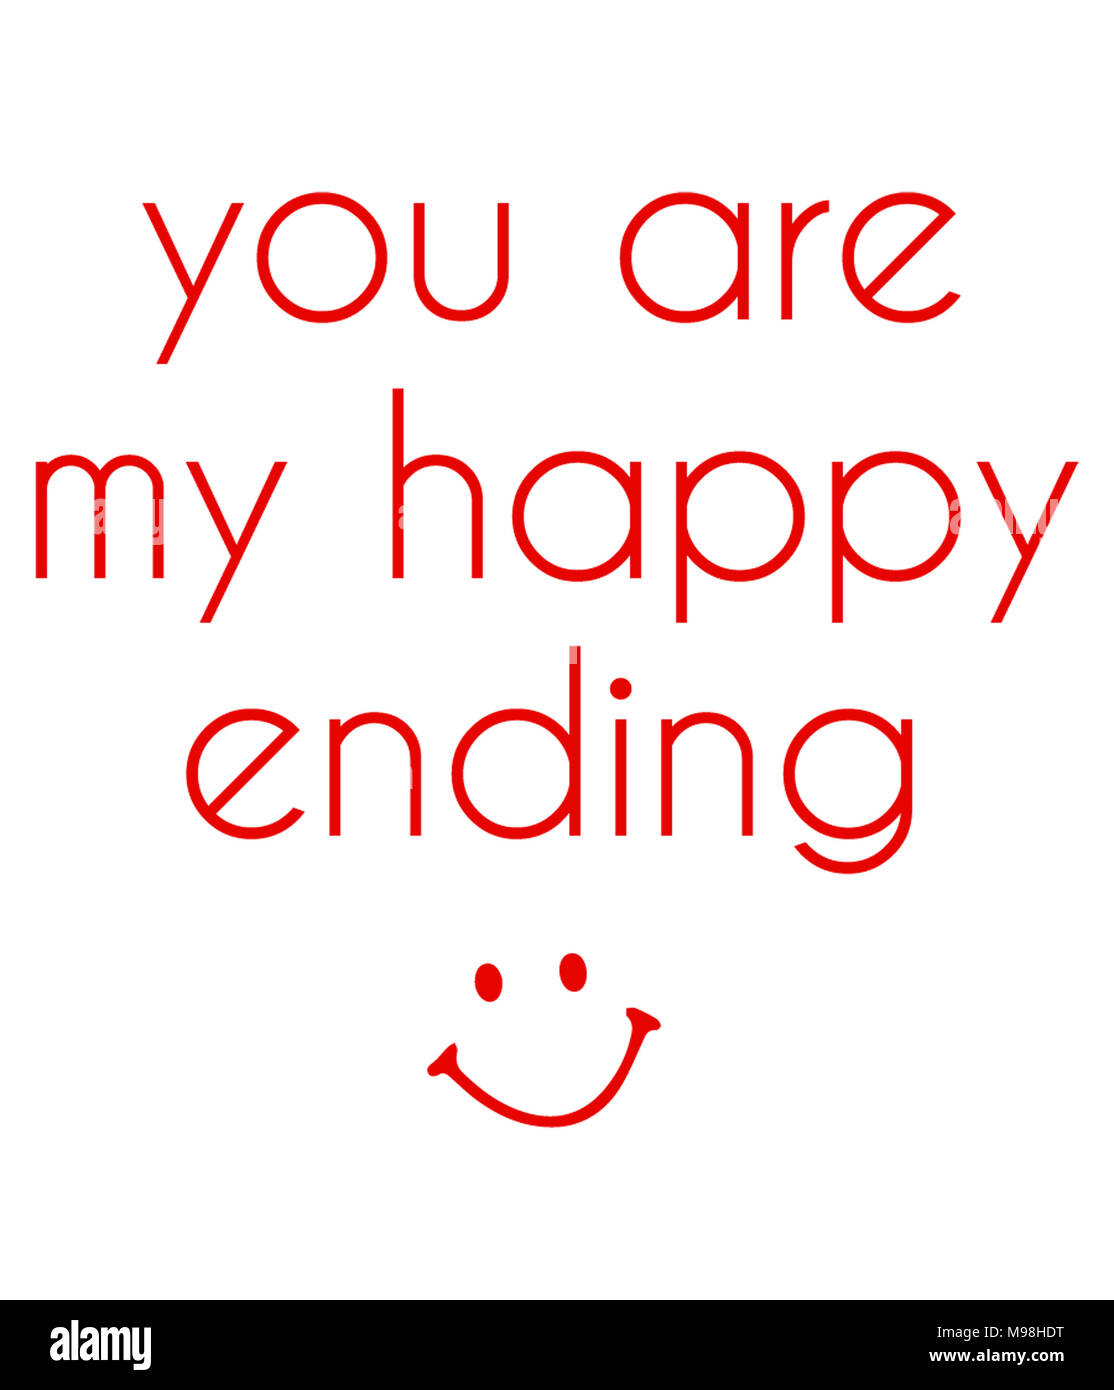 you are my happy ending - Stock Image